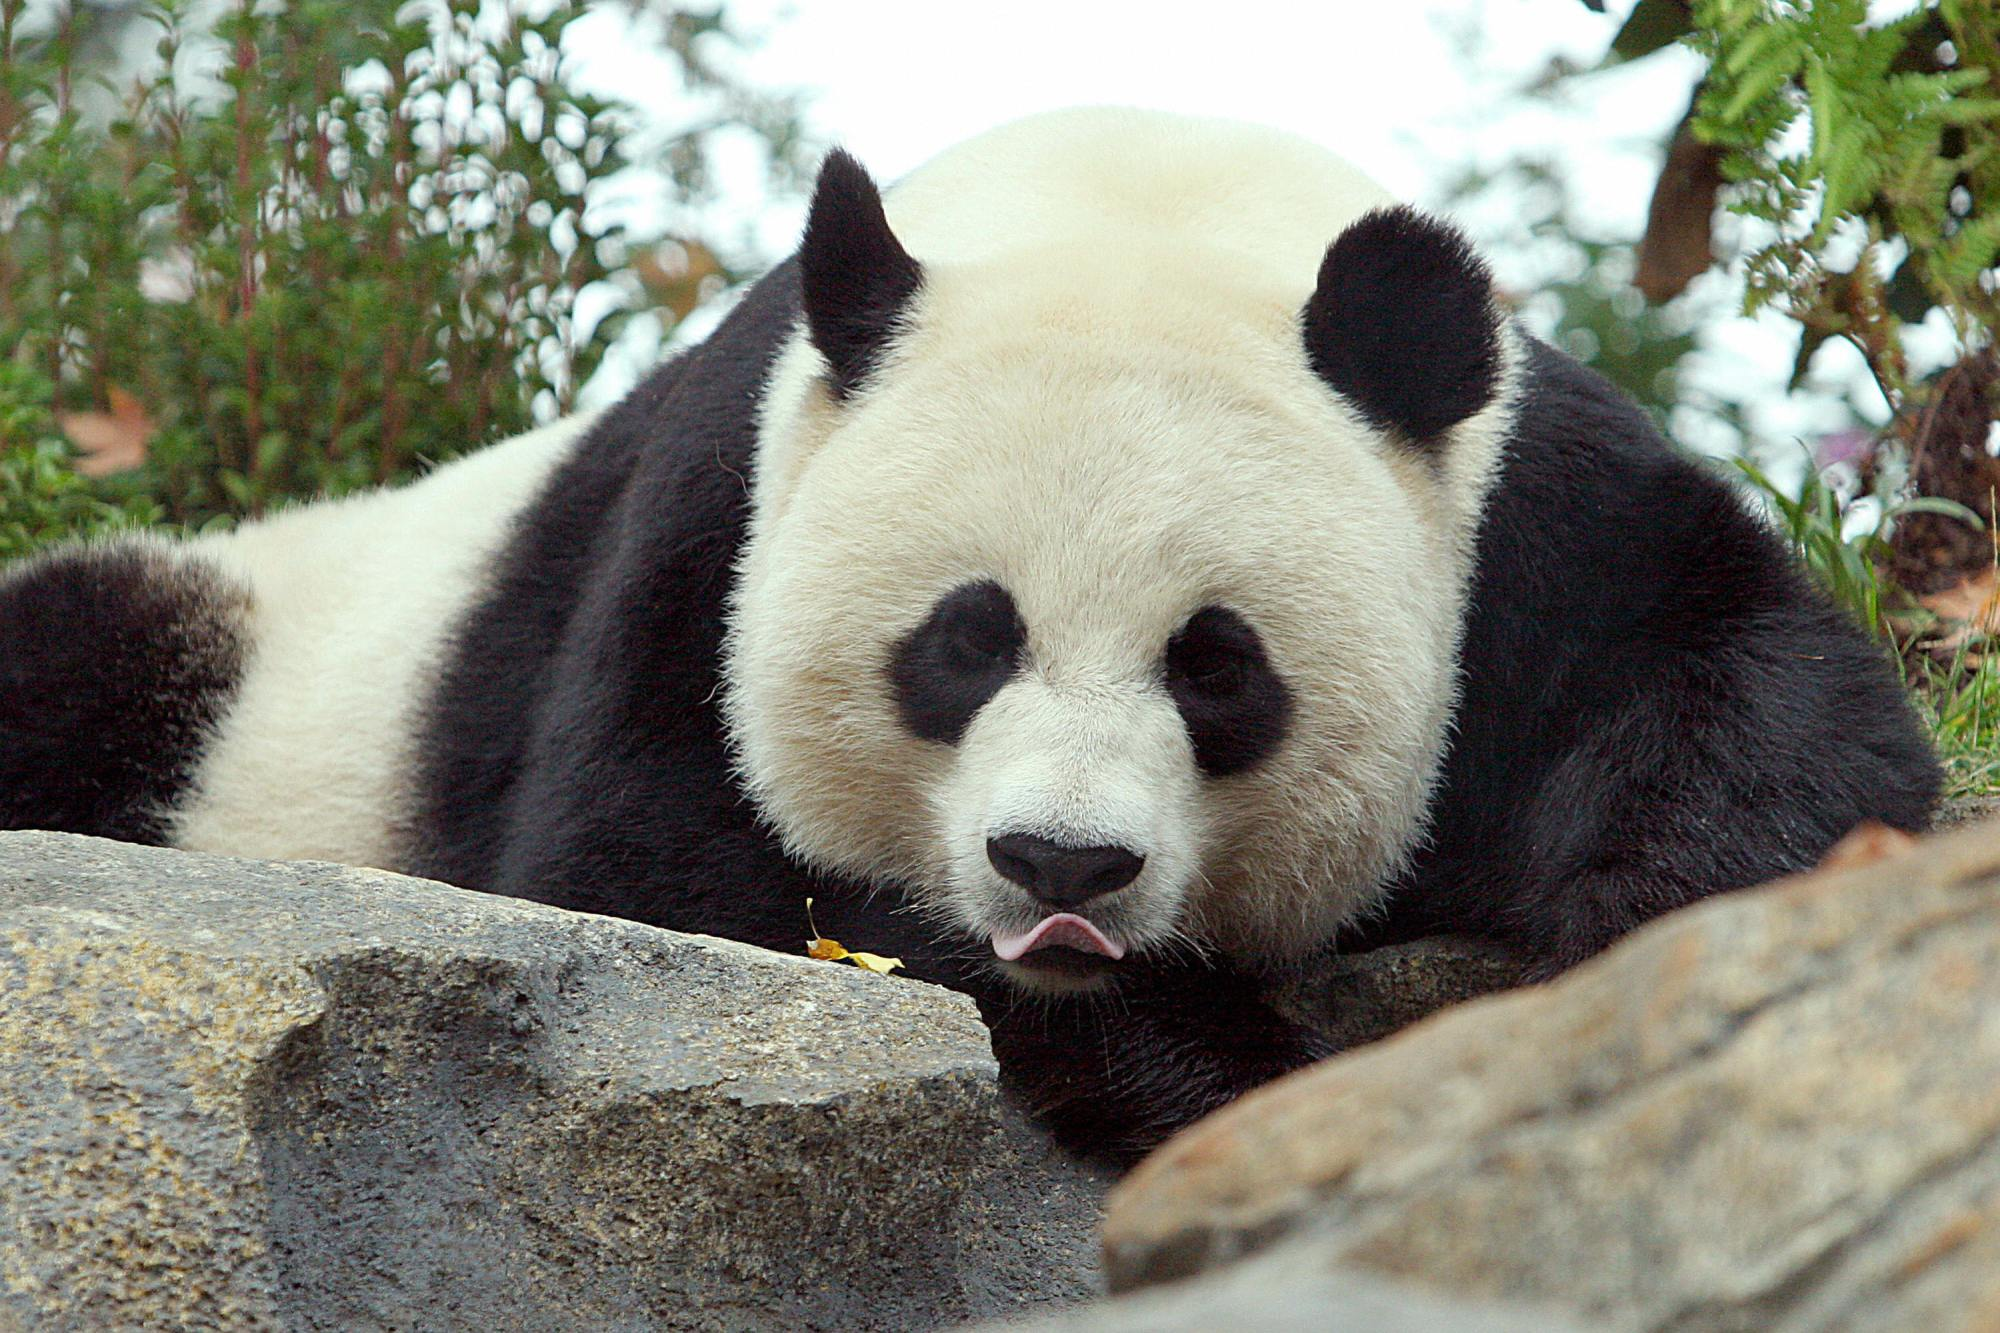 Mei Xiang, a Giant Panda is seen during